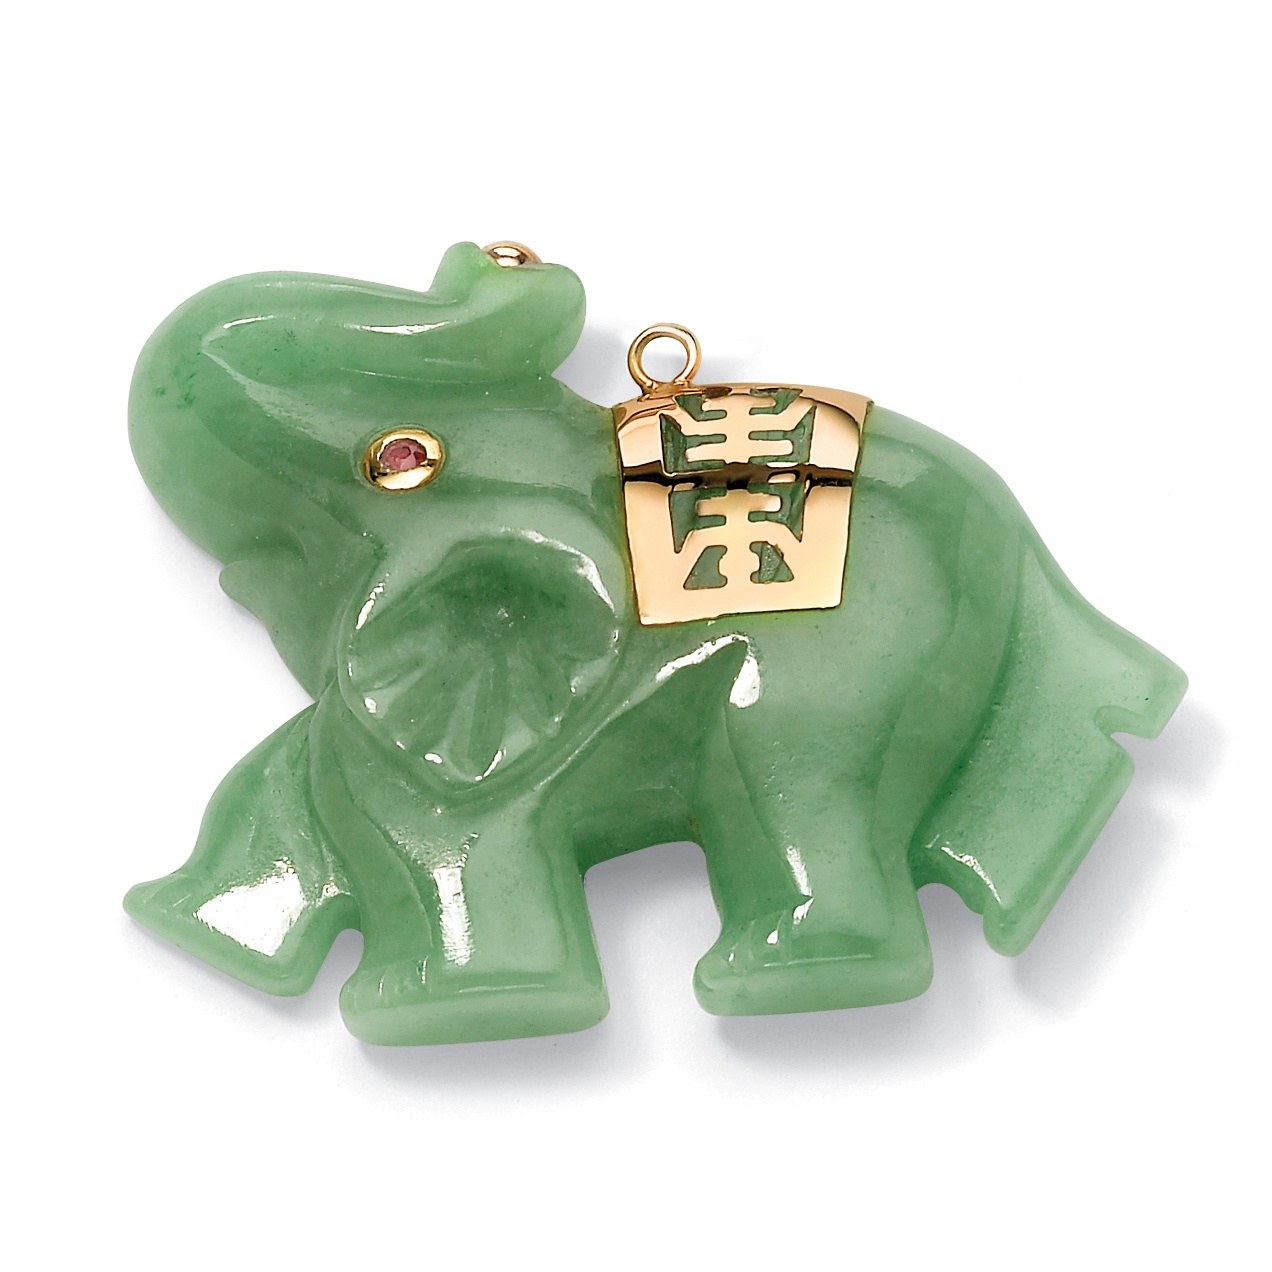 Green jade pink genuine sapphire accent 14k yellow gold lucky green jade pink genuine sapphire accent 14k yellow gold lucky elephant charm pendant at palmbeach jewelry aloadofball Gallery